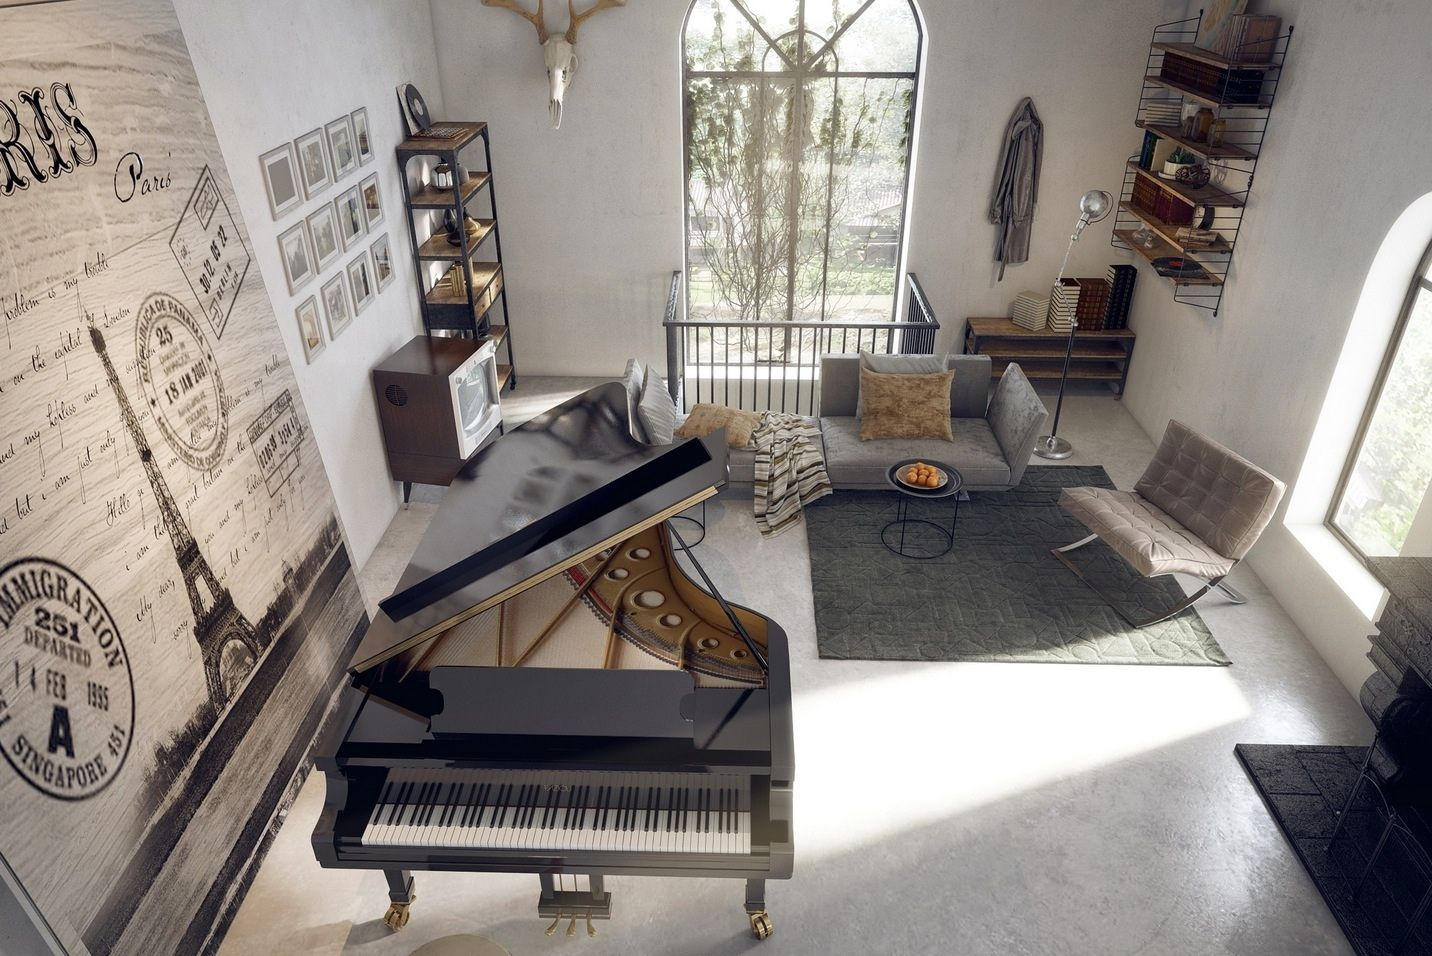 Living Room Luxury Layout Decadence Game Grand Piano Certainly Make Focal Point